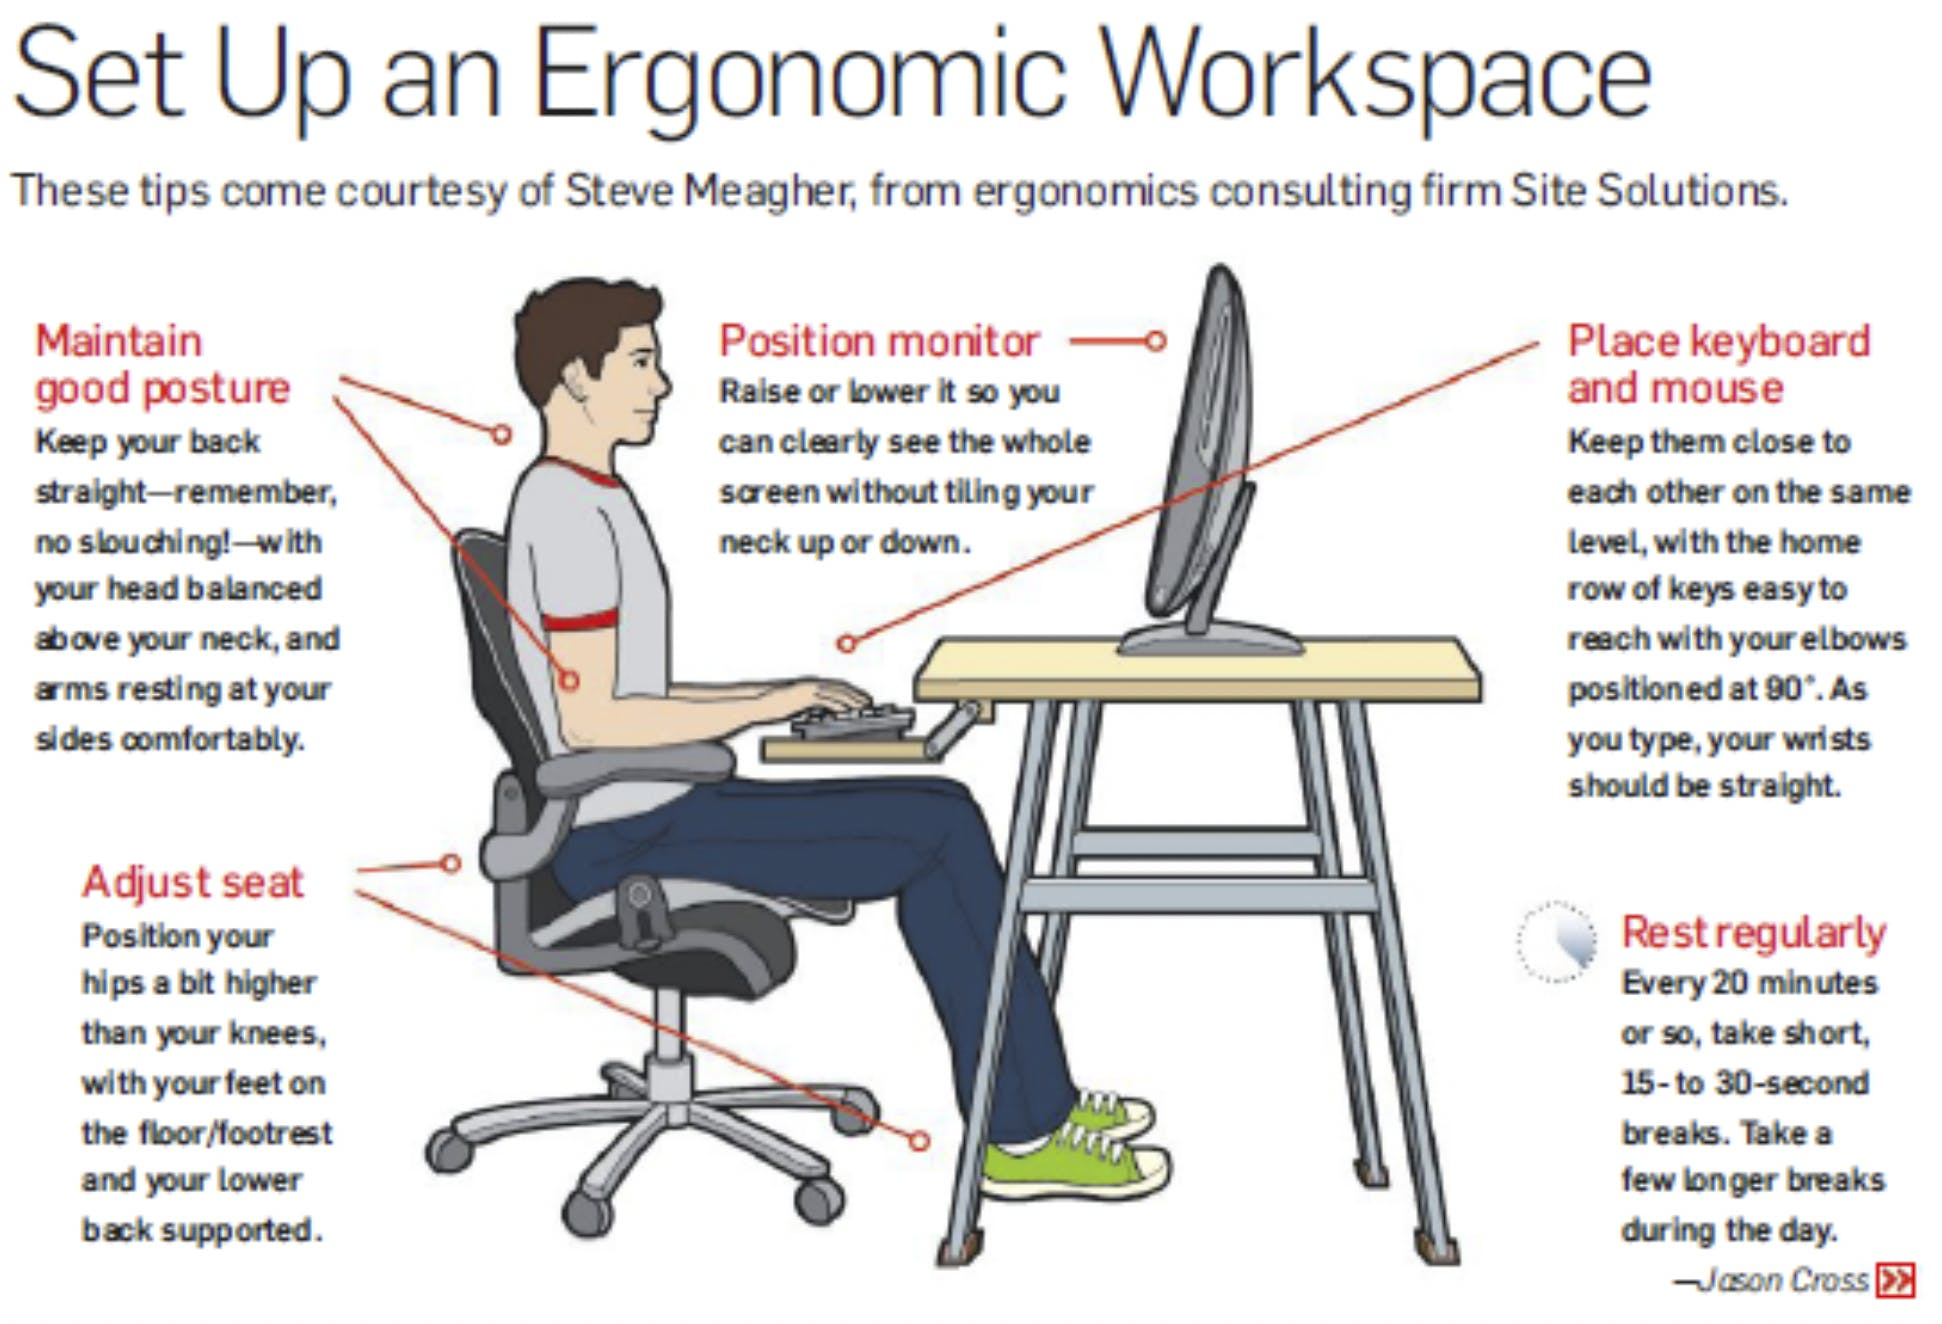 setting up an ergonomic workspace